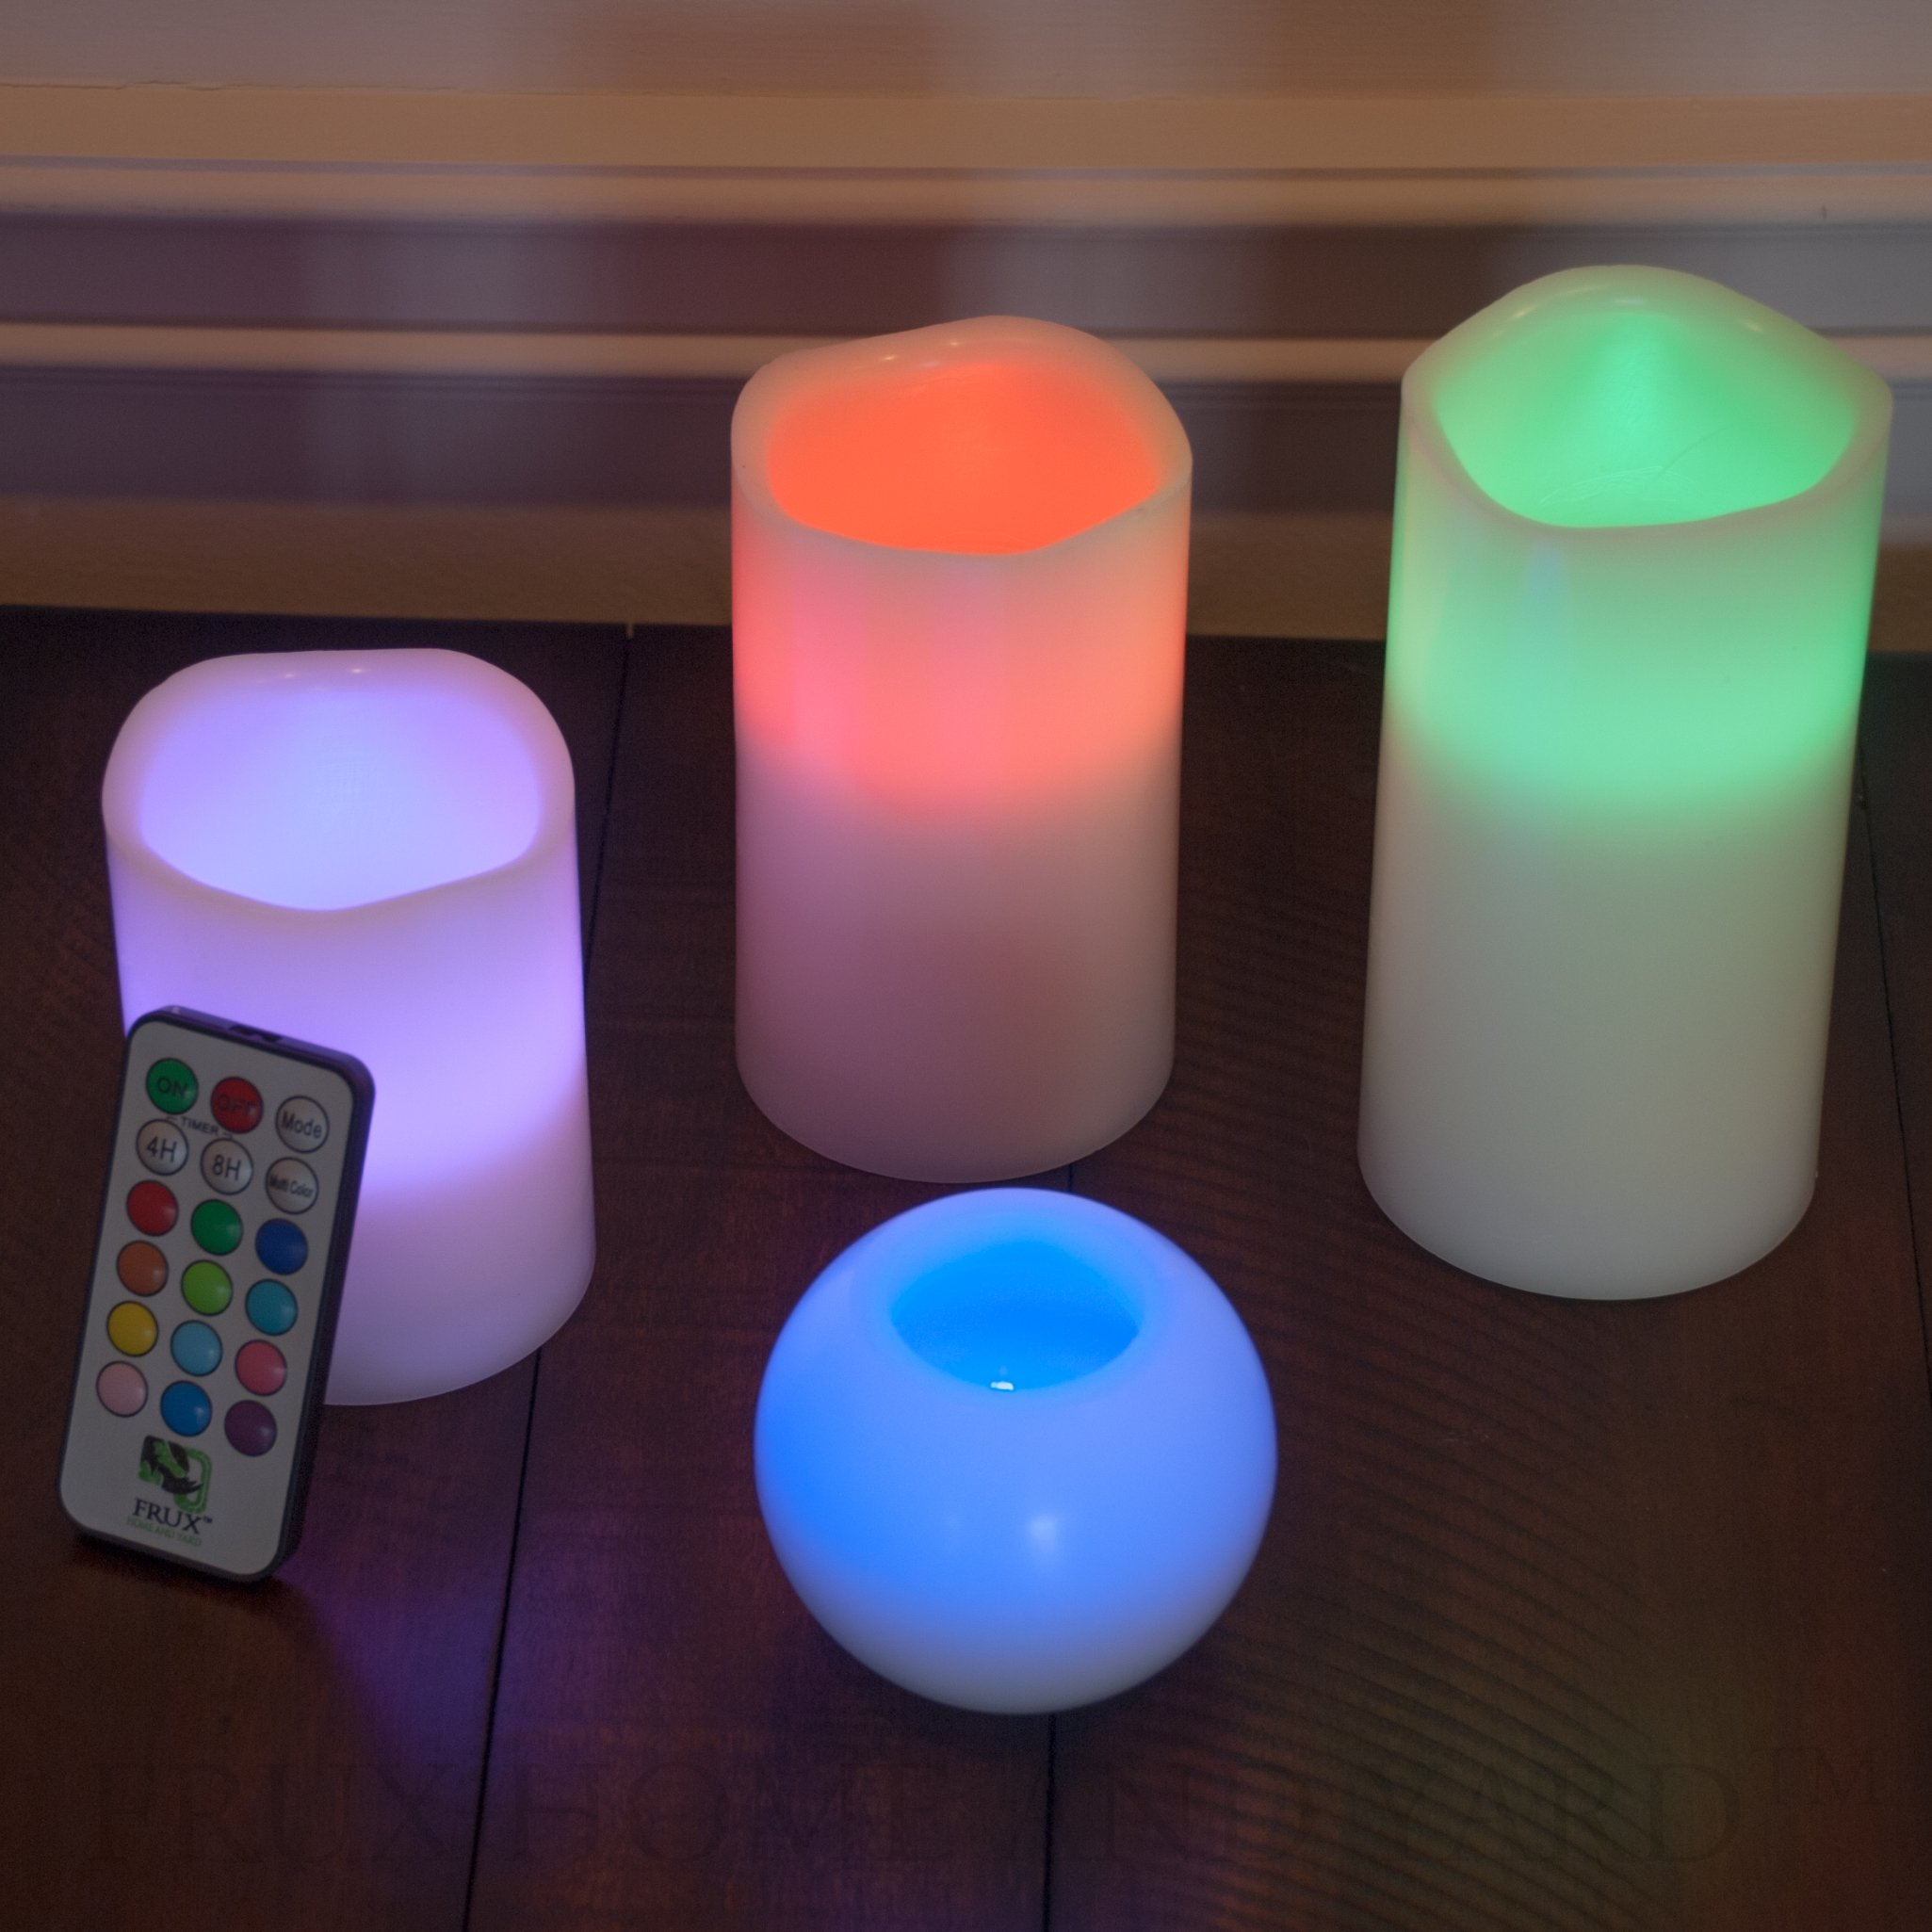 BEST FLAMELESS CANDLES WITH 12 COLOR, TIMER REMOTE CONTROL, Unscented Flickering Battery Operated Electric Candle for Home Decor, Weddings, Parties & Gifts, Set of 4' 5' 6' Pillars & BONUS Ball Candle by Frux Home and Yard (Image #5)